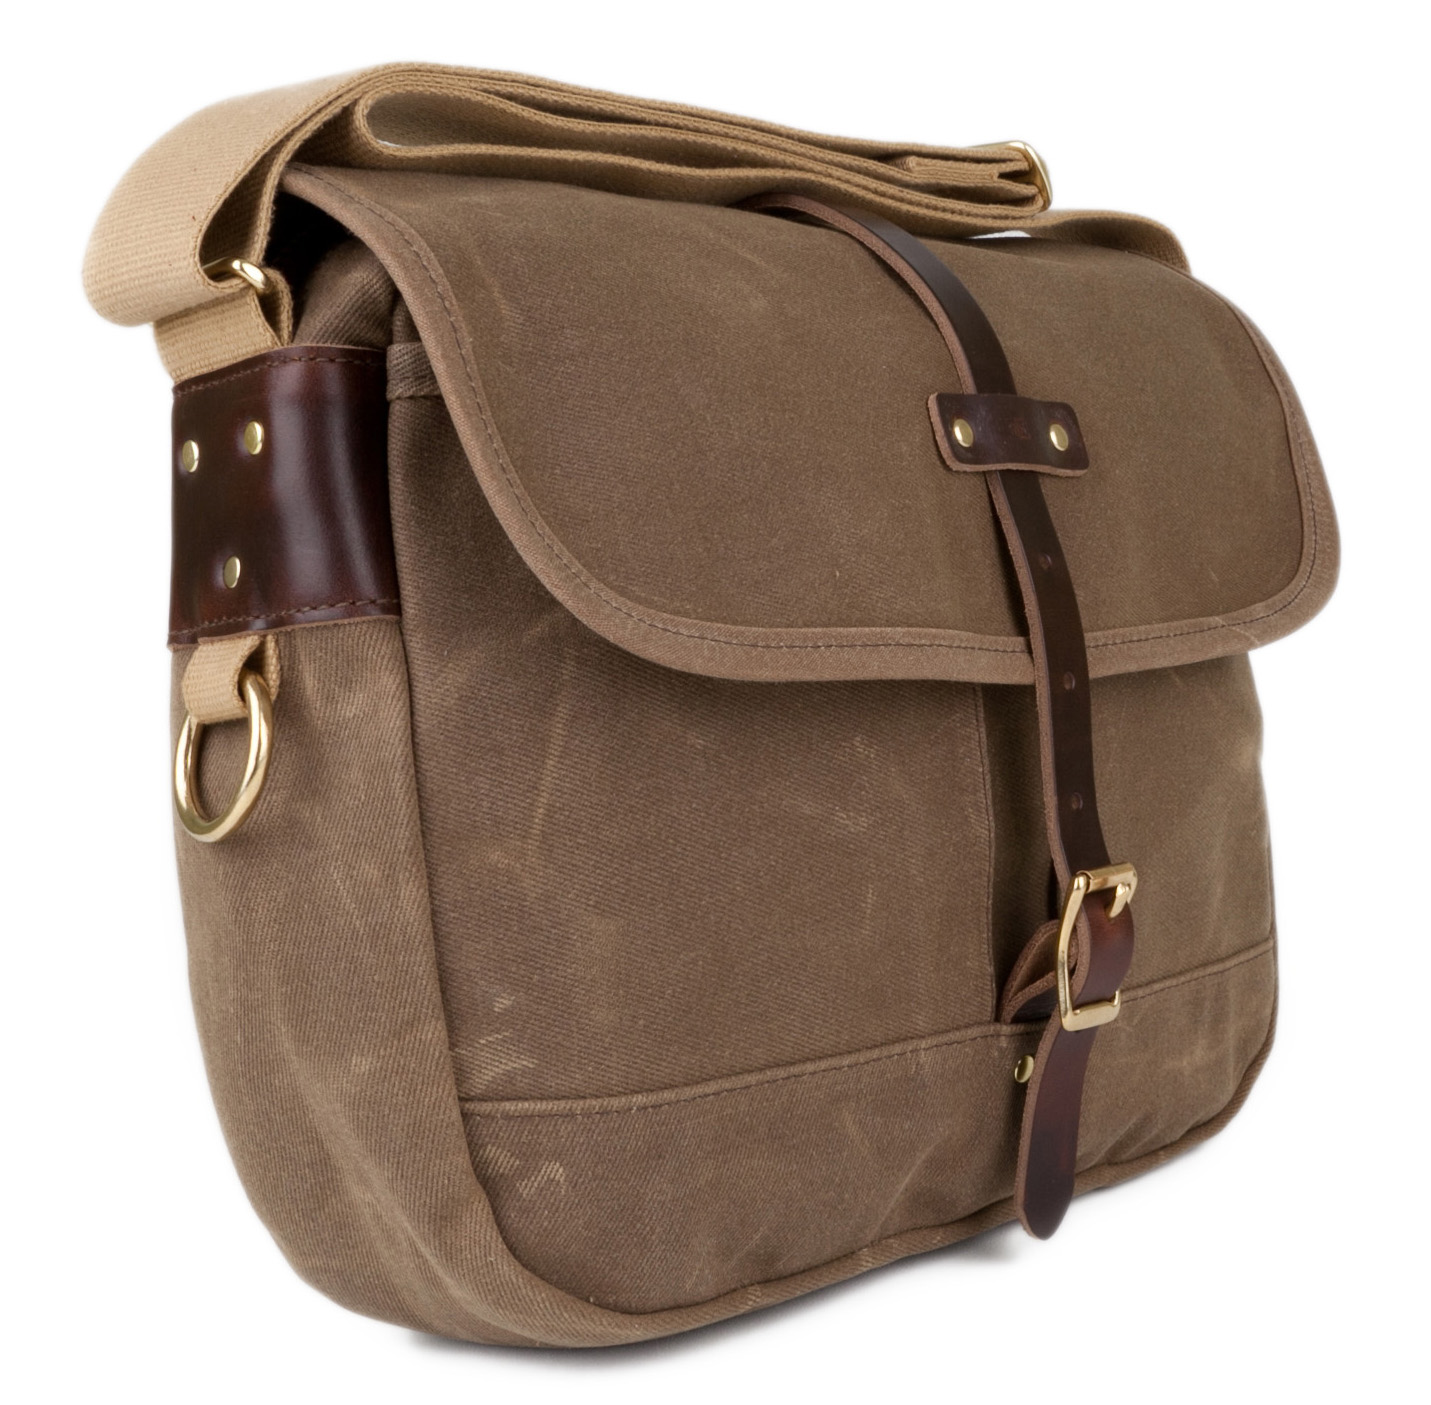 Update Archival Small Field Bags In Ranger Tan And Black